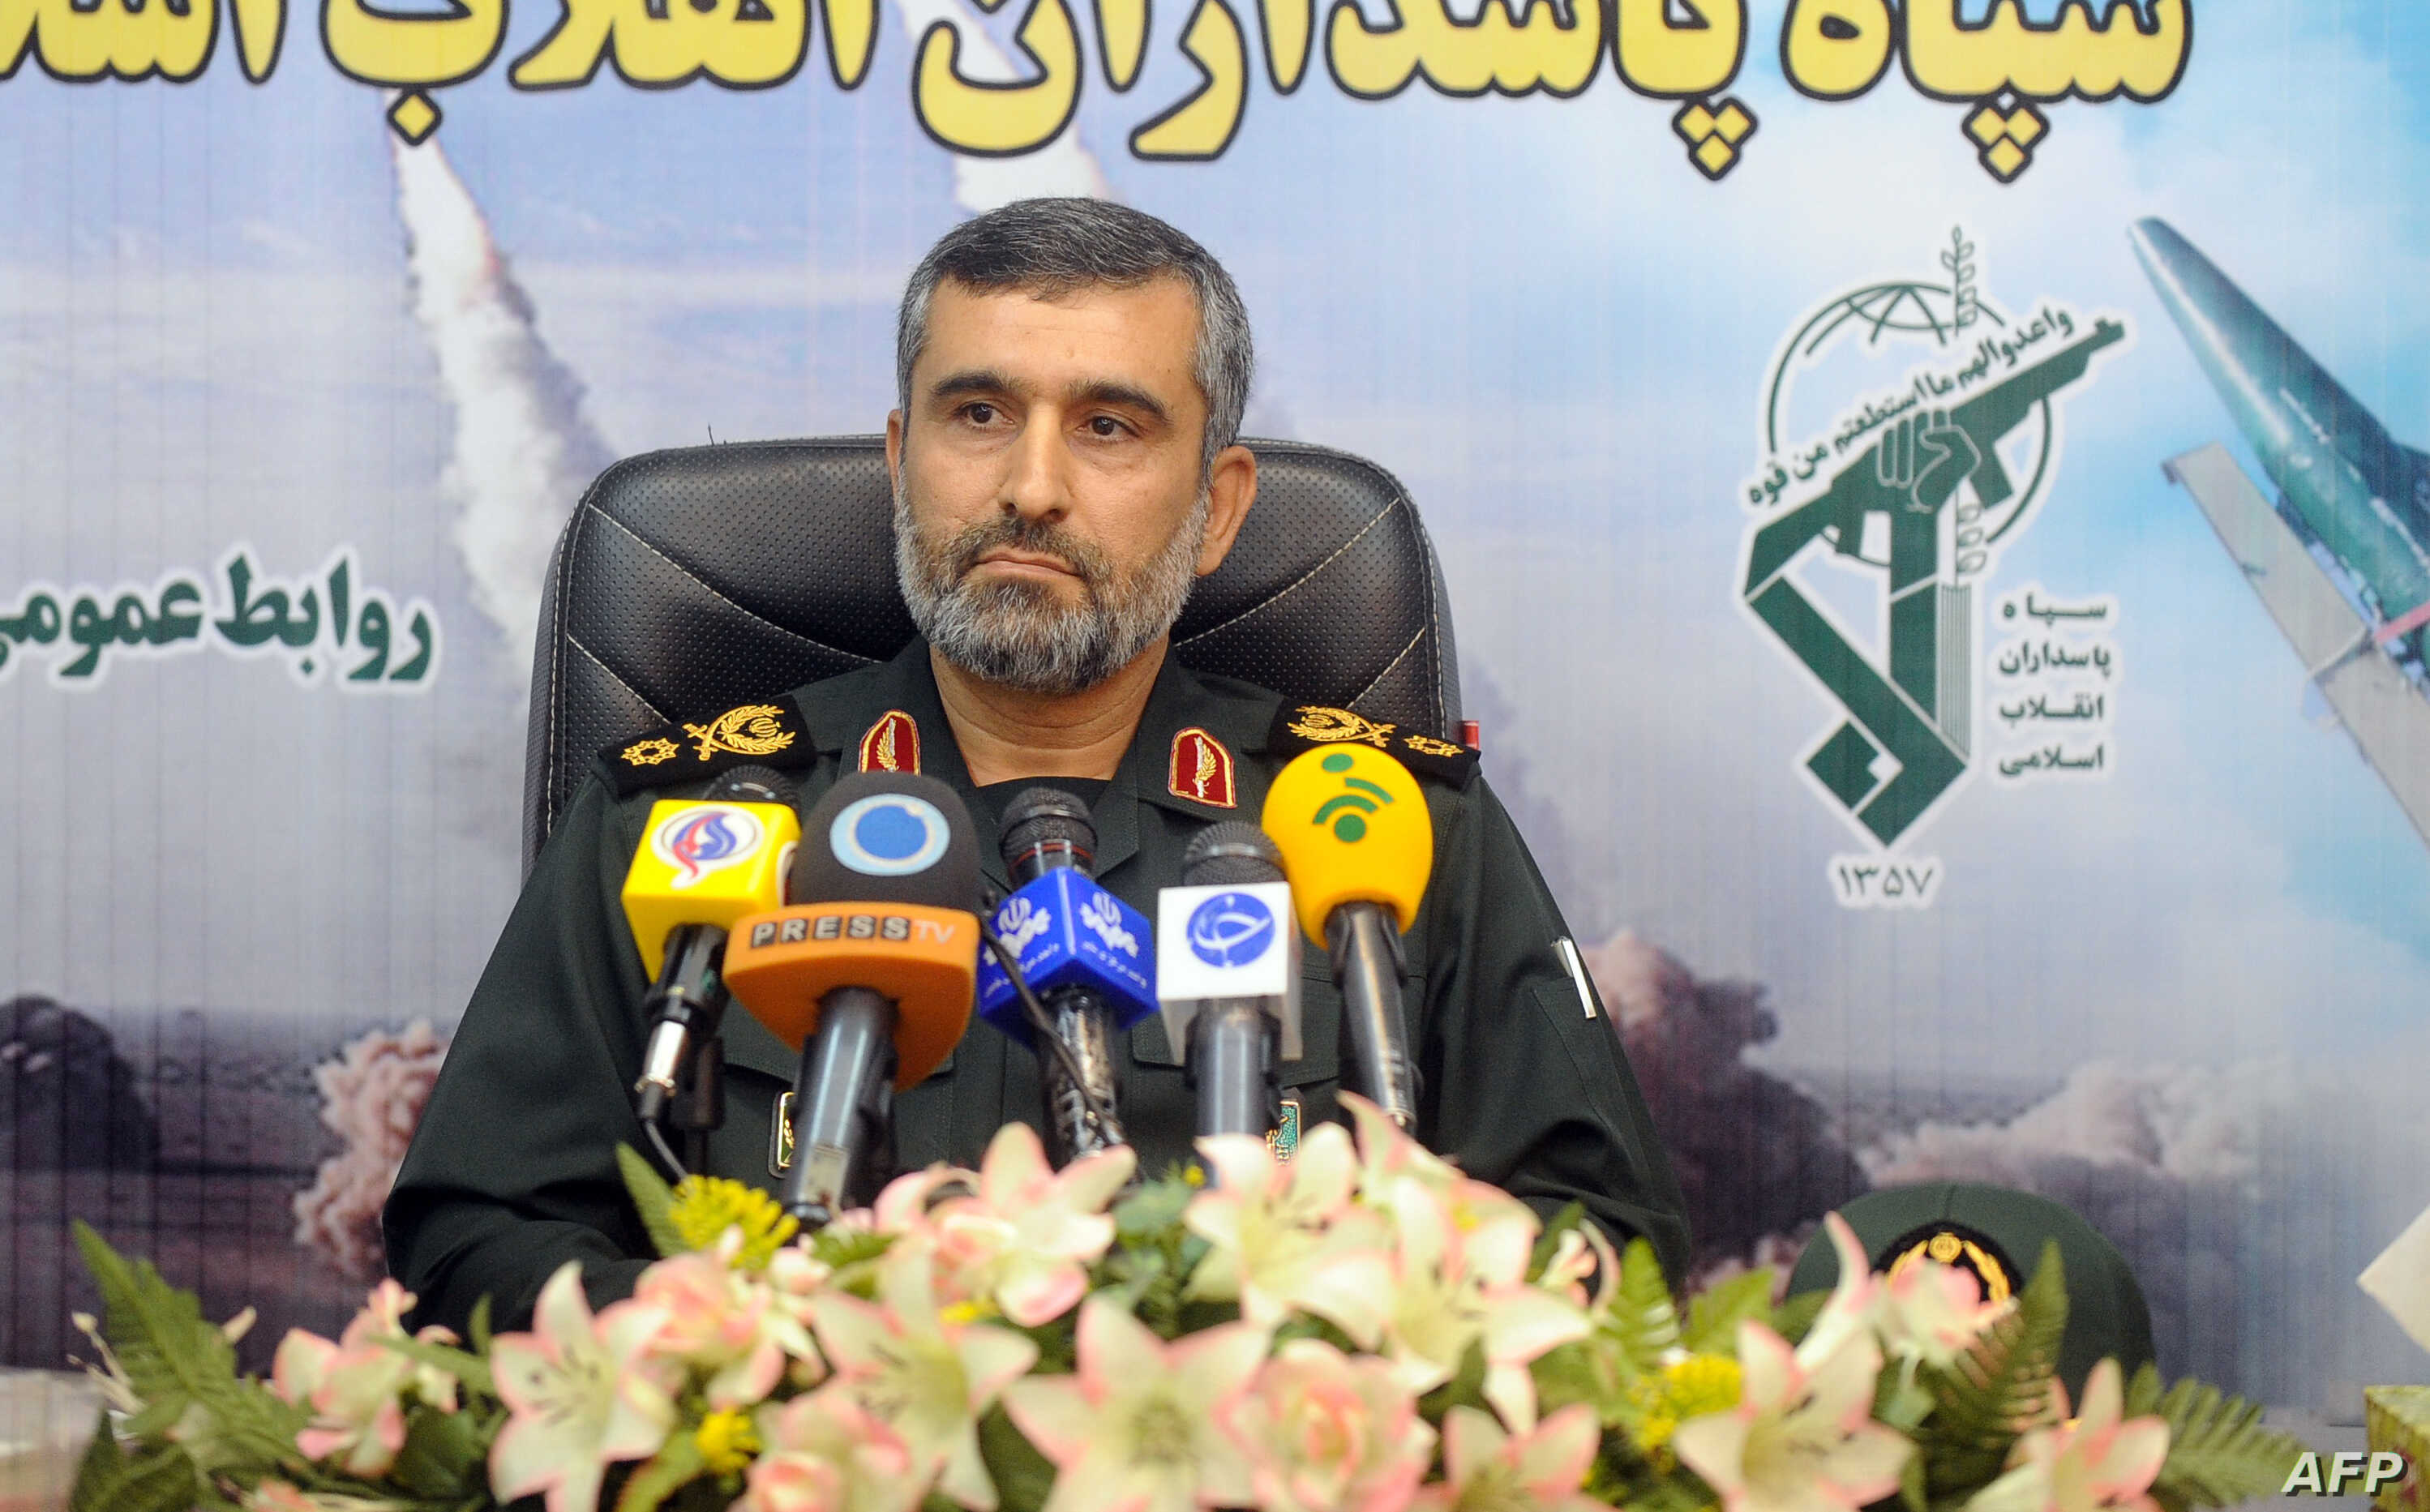 A picture obtained on Aug. 25, 2014 from Iran's ISNA news agency and taken on Jan.y 7, 2012 shows General Amirali Hajizadeh, commander of aerial forces of Iran's elite Revolutionary Guards giving a press conference in Tehran.